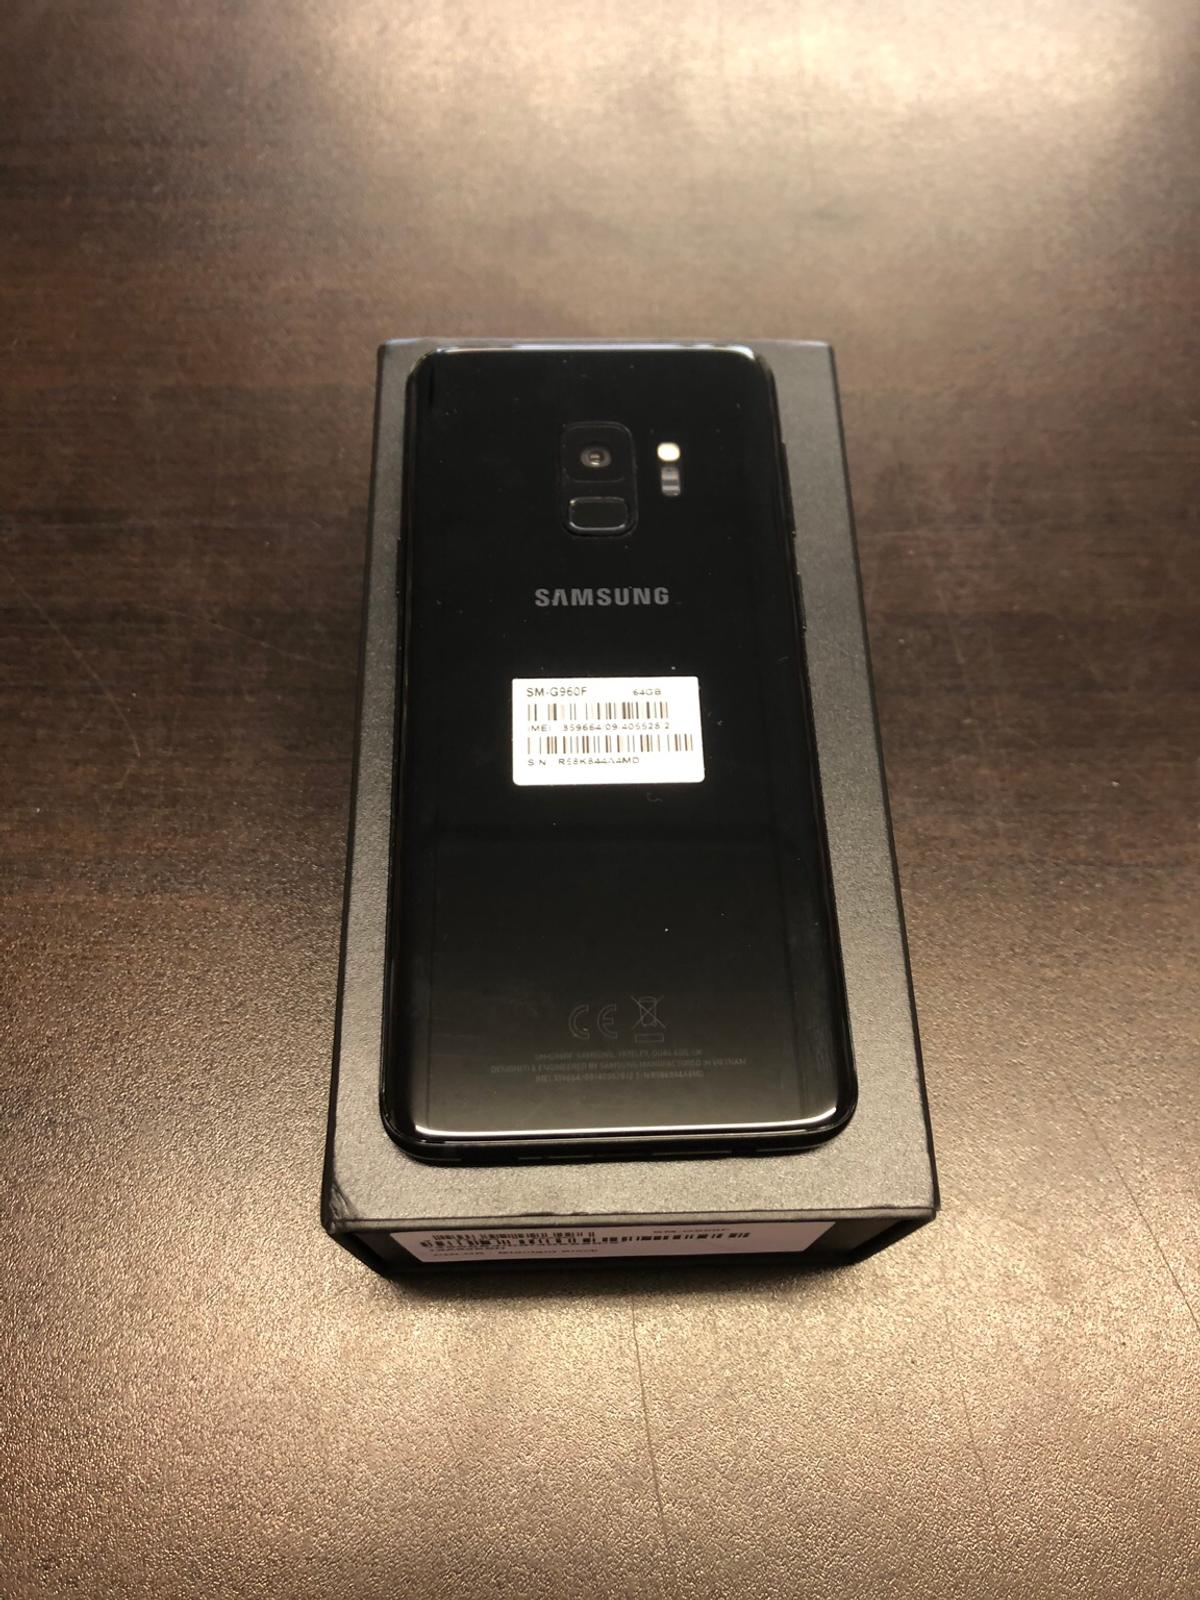 Samsung galaxy s9 64gb Unlocked very good condition with 12 months Samsung warranty  Buy with confidence from a phone shop all our phones come with warranty and accessories 01217071234 Open Monday to Saturday 11am till 5pm Out off hours collection can be arranged please call or text 07944 818181  Fone Squad 35 Warwick Road Solihull B92 7HS If using sat nav only use post code not the door number  All major debt and credit cards accepted Collection only